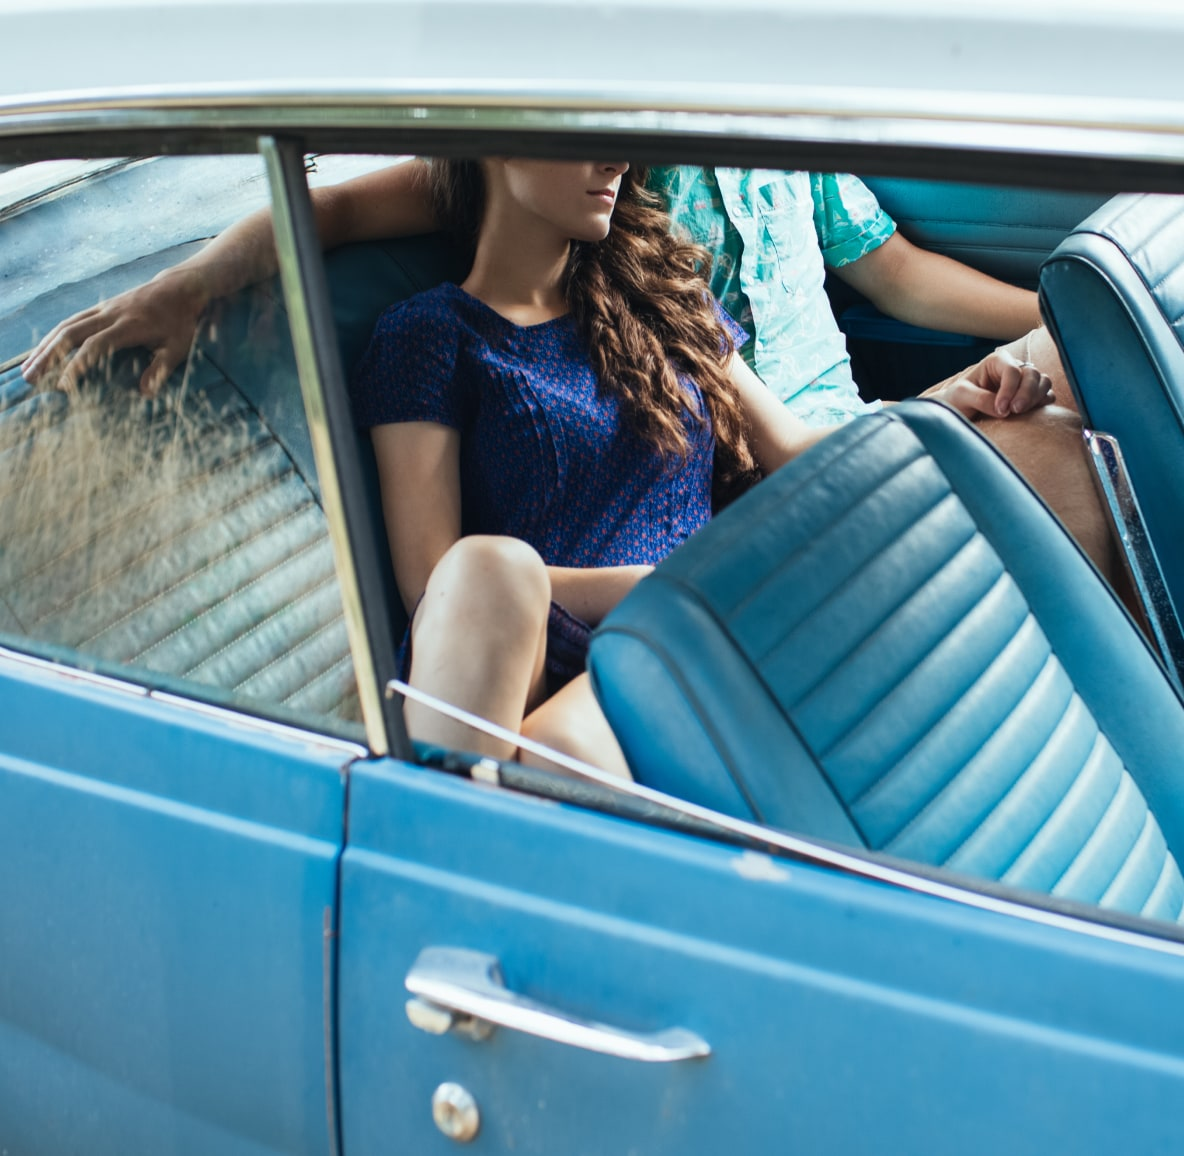 Man and woman couple sitting in the back seat of a vintage car on a date